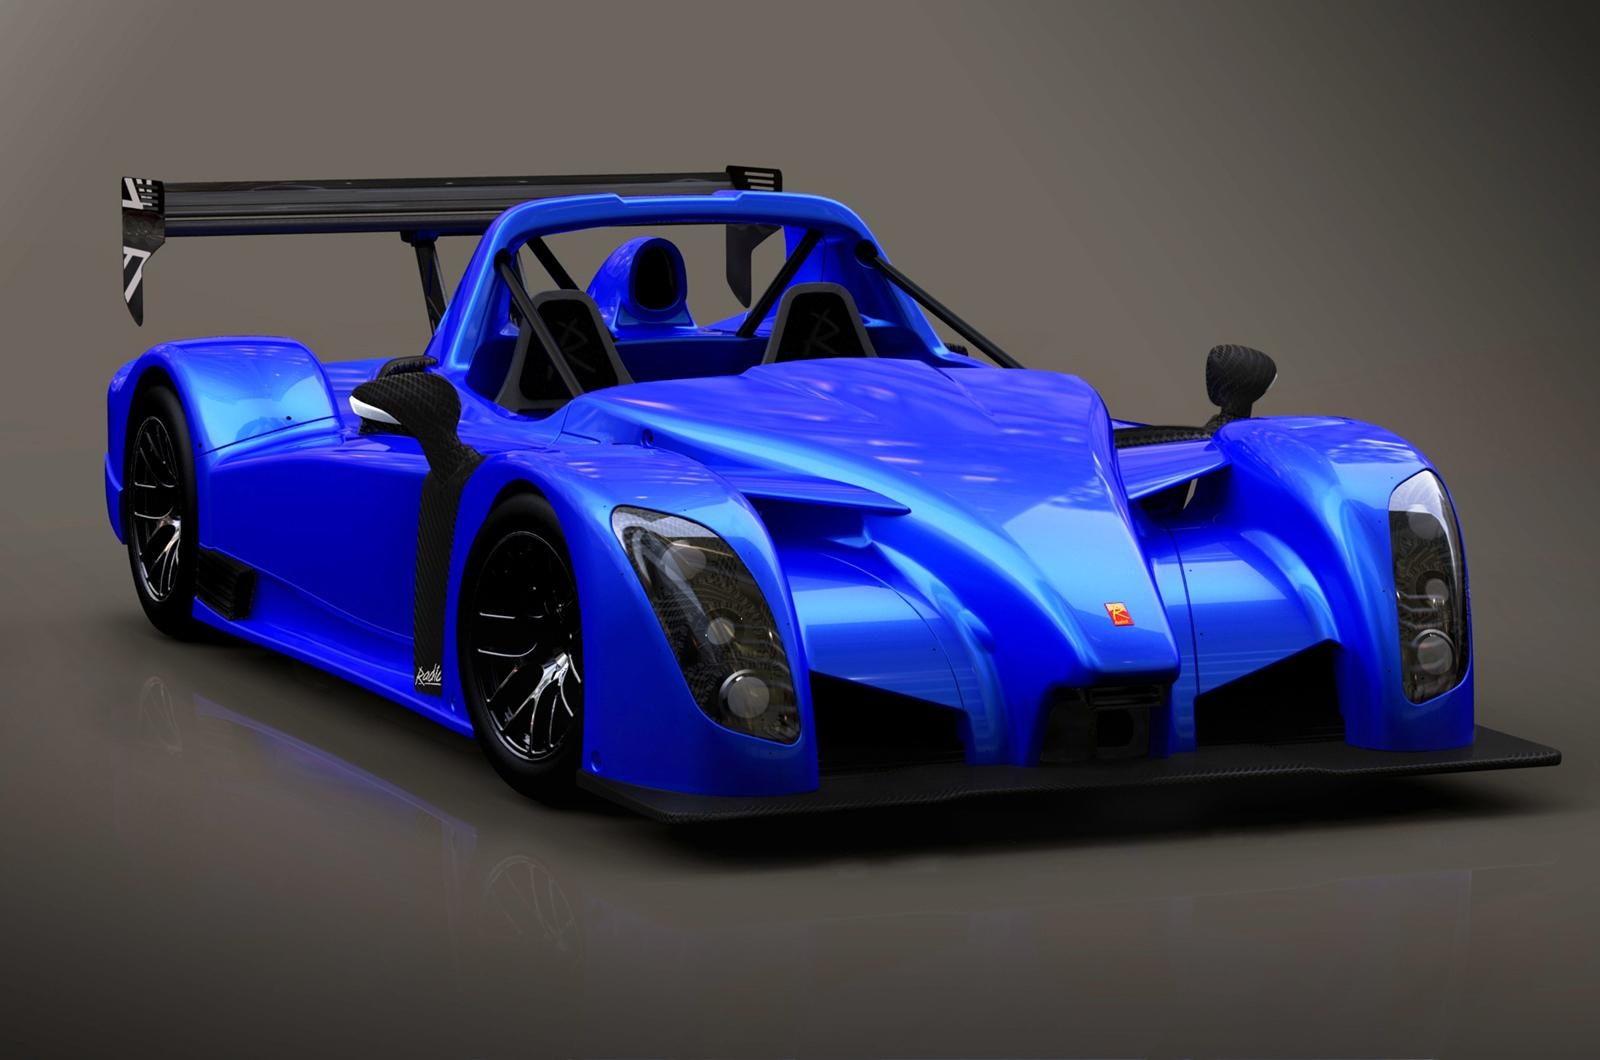 440 Hp Radical Sr8 Rsx Redlines At A Whopping 10 500 Rpm